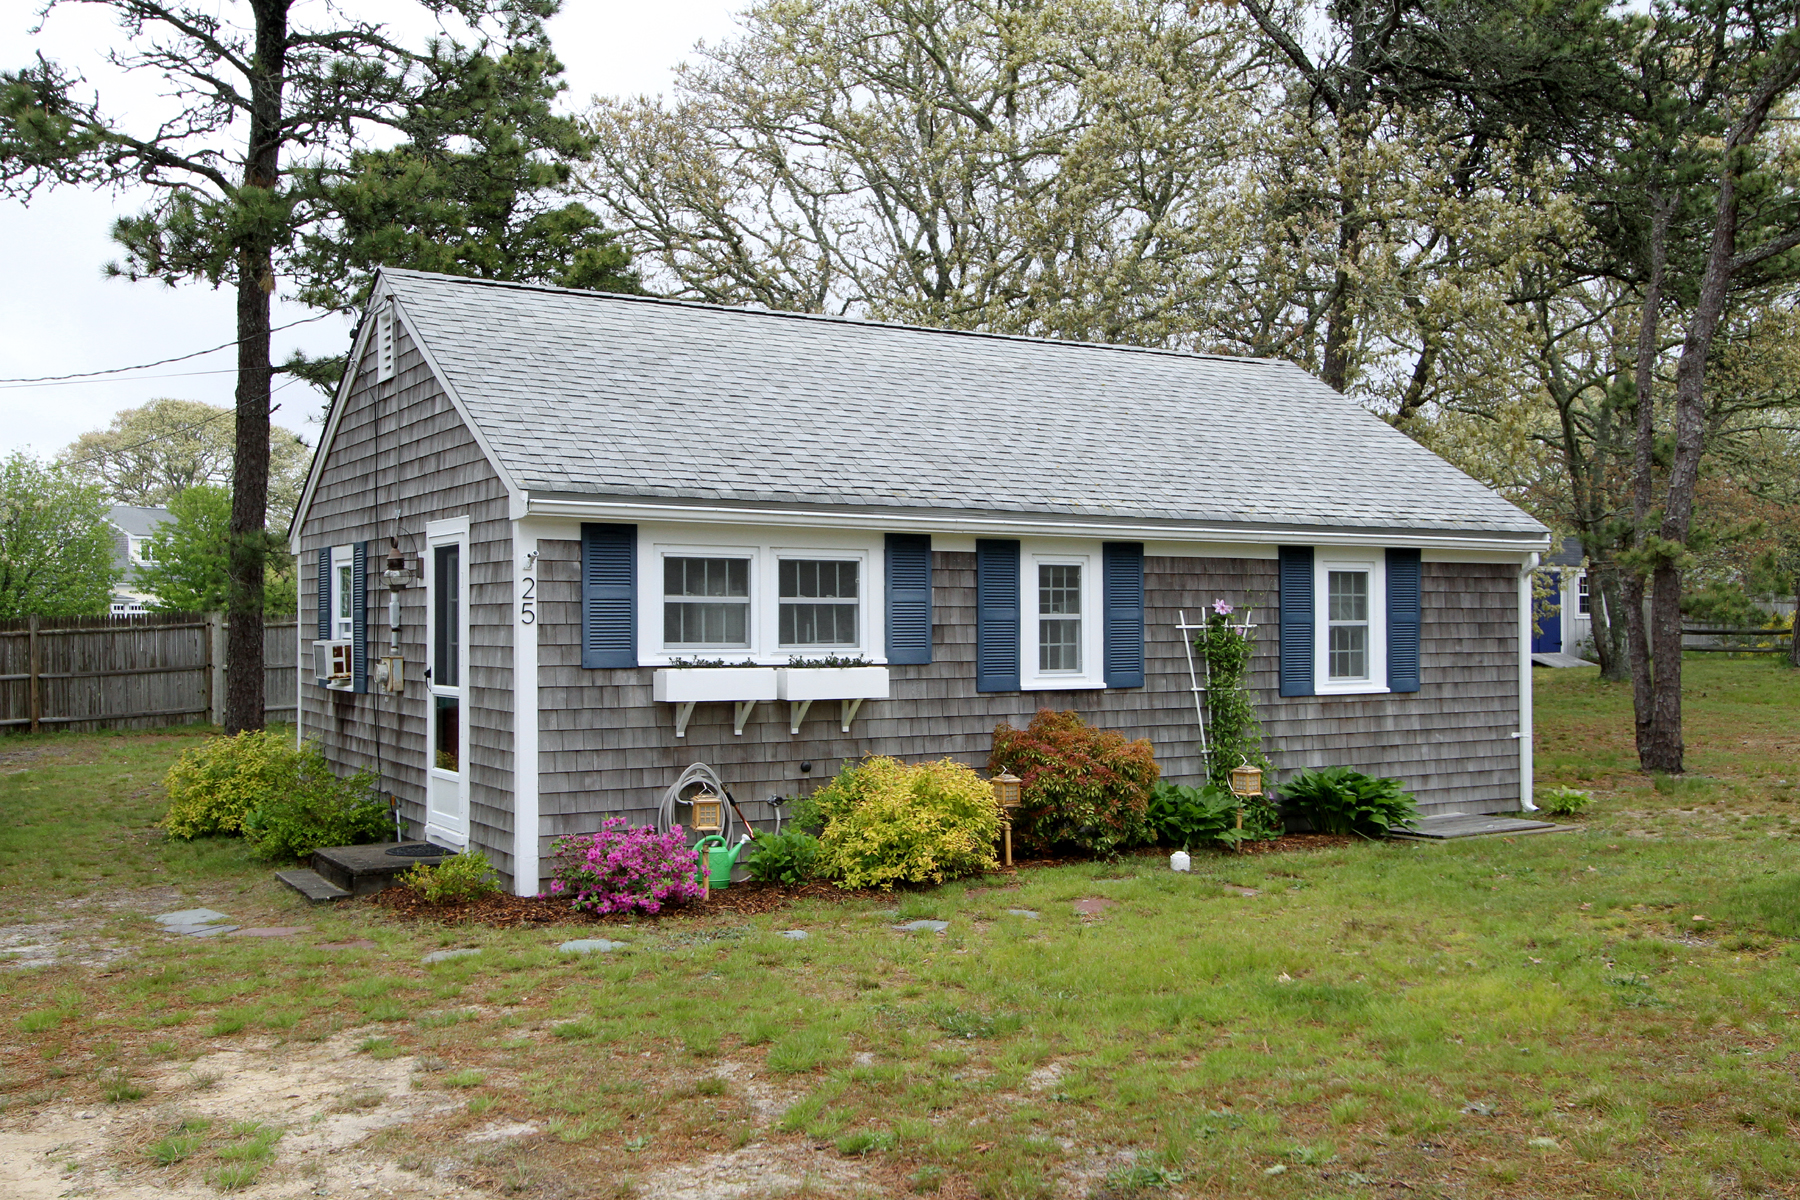 Single Family Home for Sale at 25 Toms Way, Chatham, MA Chatham, Massachusetts, 02633 United States